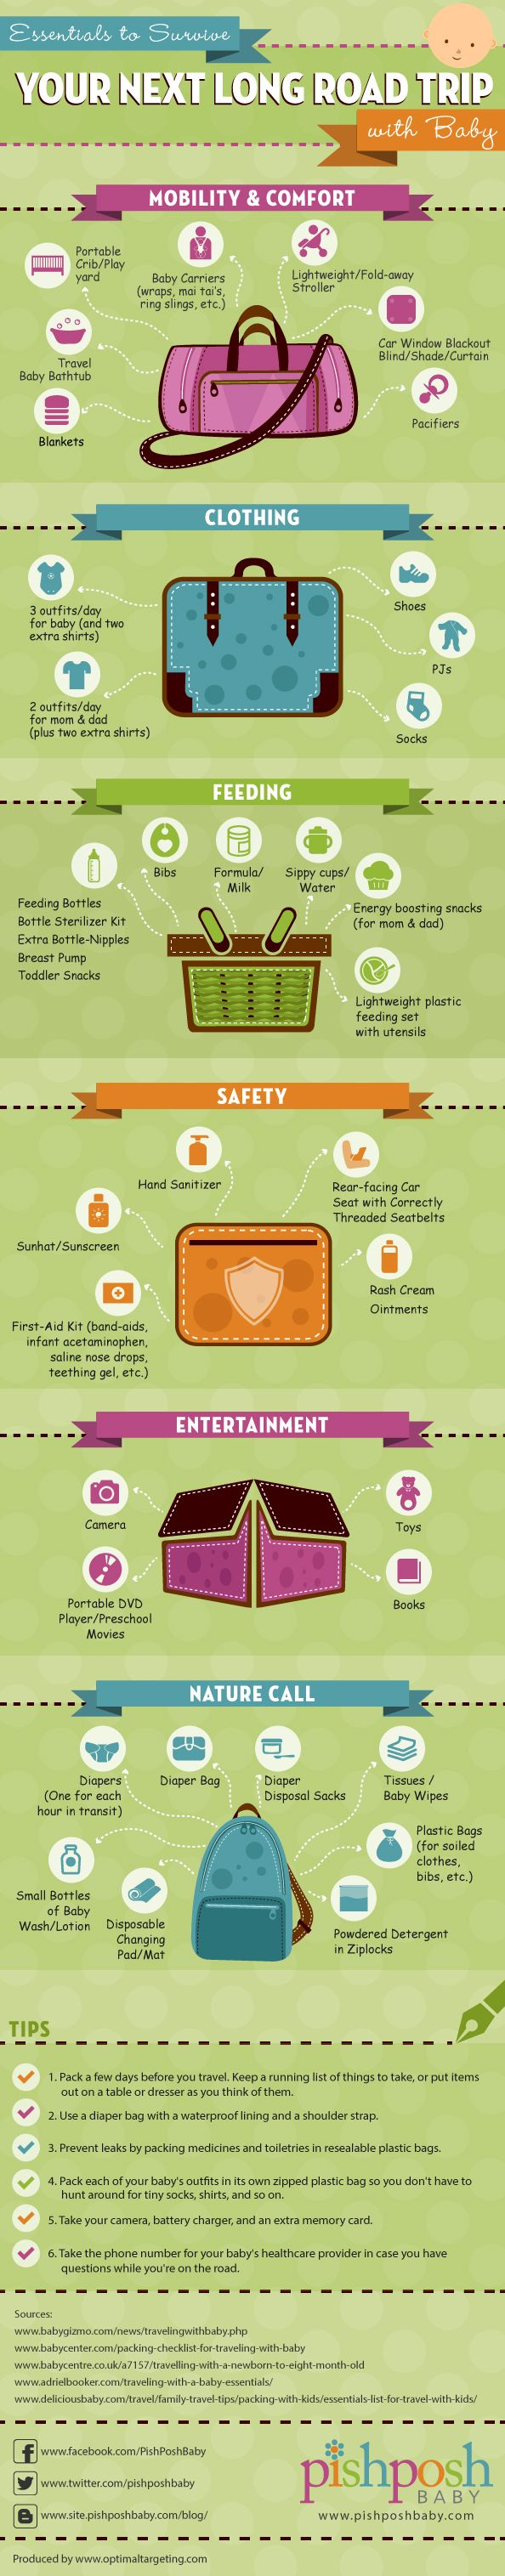 Holiday season: that exciting, sparkling time of year that's punctuated with love, giving, and togetherness. Here's an infographic that hopefully makes your travel experience easier and more enjoyable!  http://site.pishposhbaby.com/blog/2014/11/13/essentials-survive-next-long-road-trip-baby/